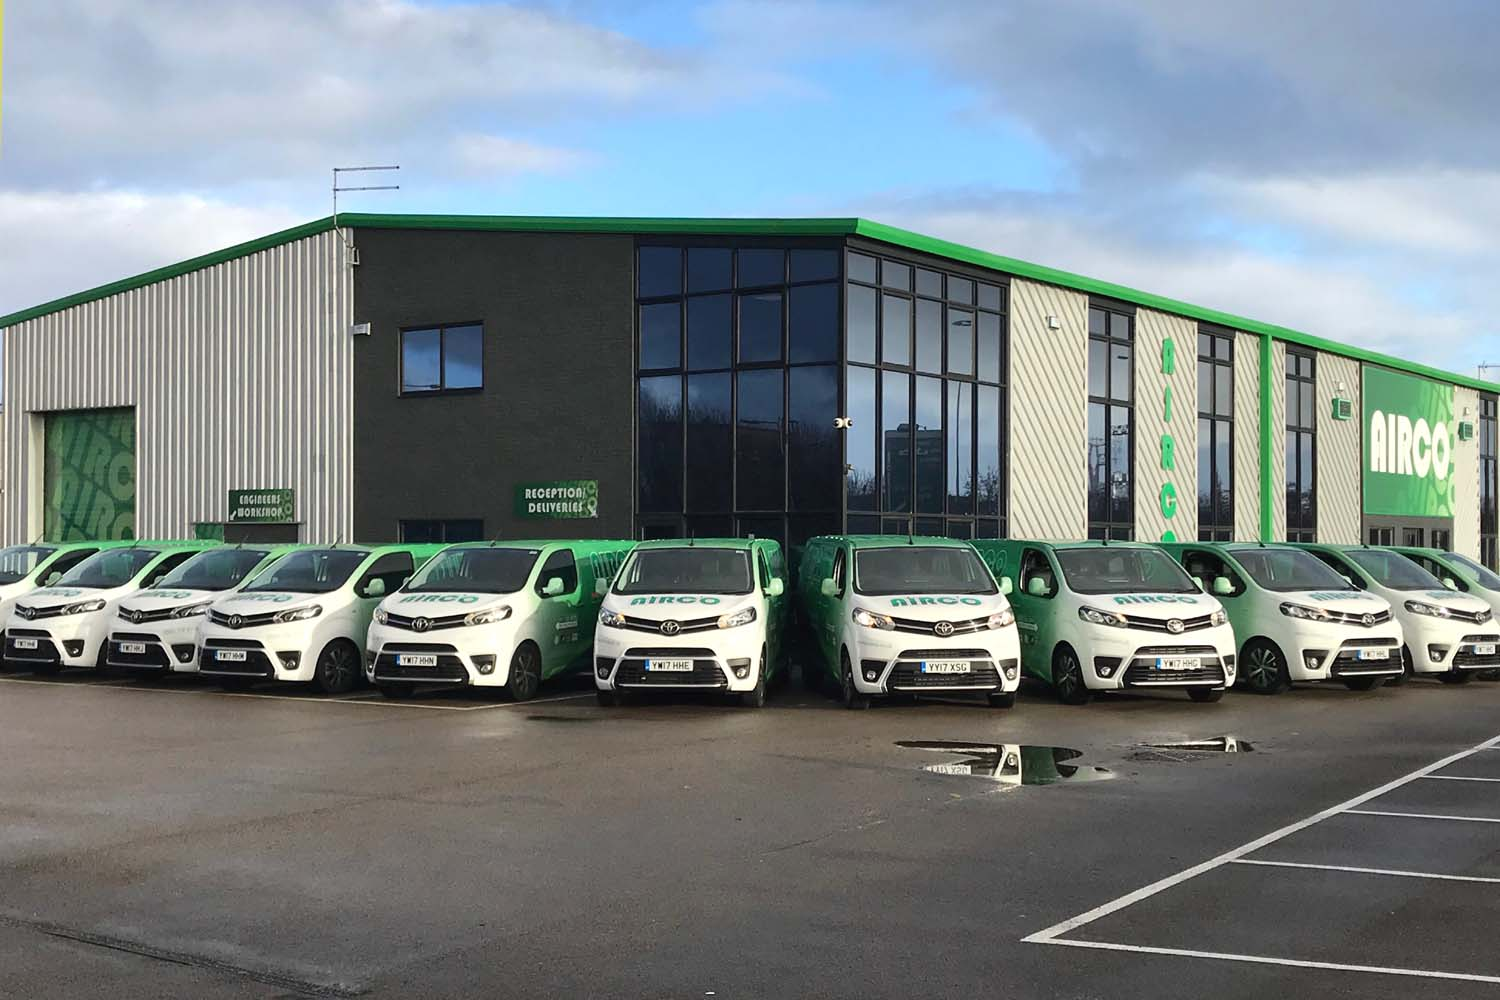 fa914153da8d Neil Fisher started Airco in 1991. Back then it was him and a van! Today  Airco is a leading multi-disciplinary building services company